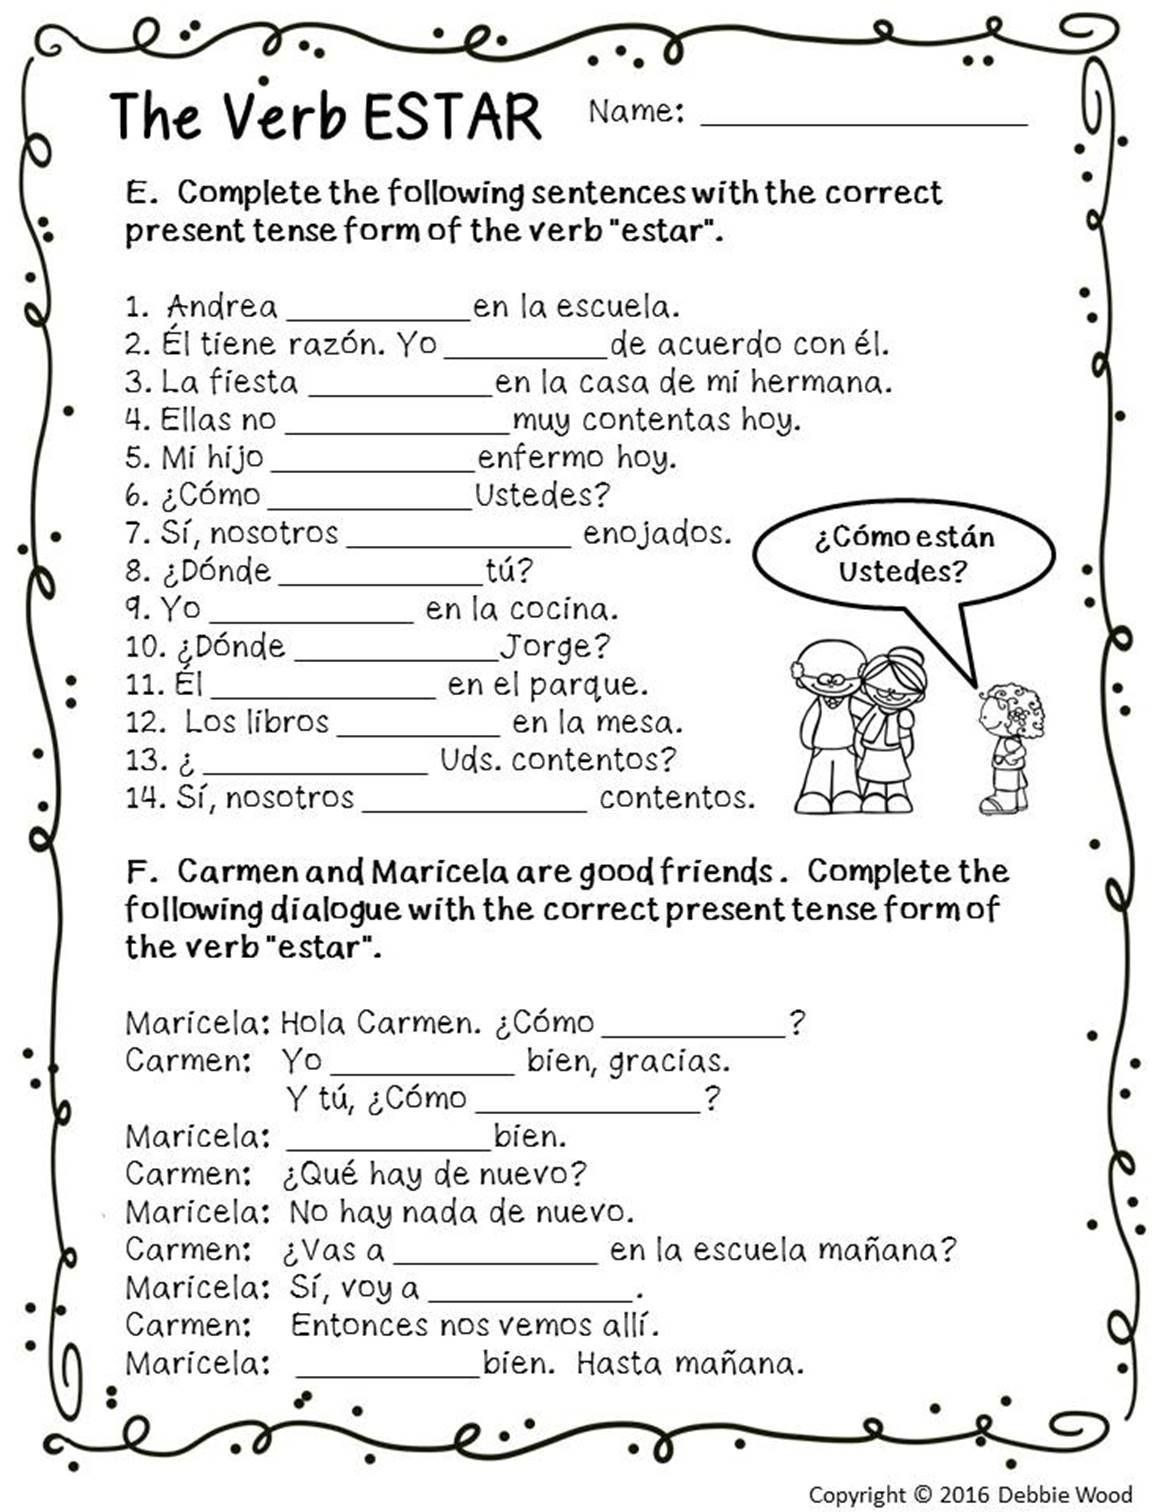 Spanish Verb Conjugation Worksheets Printable Spanish